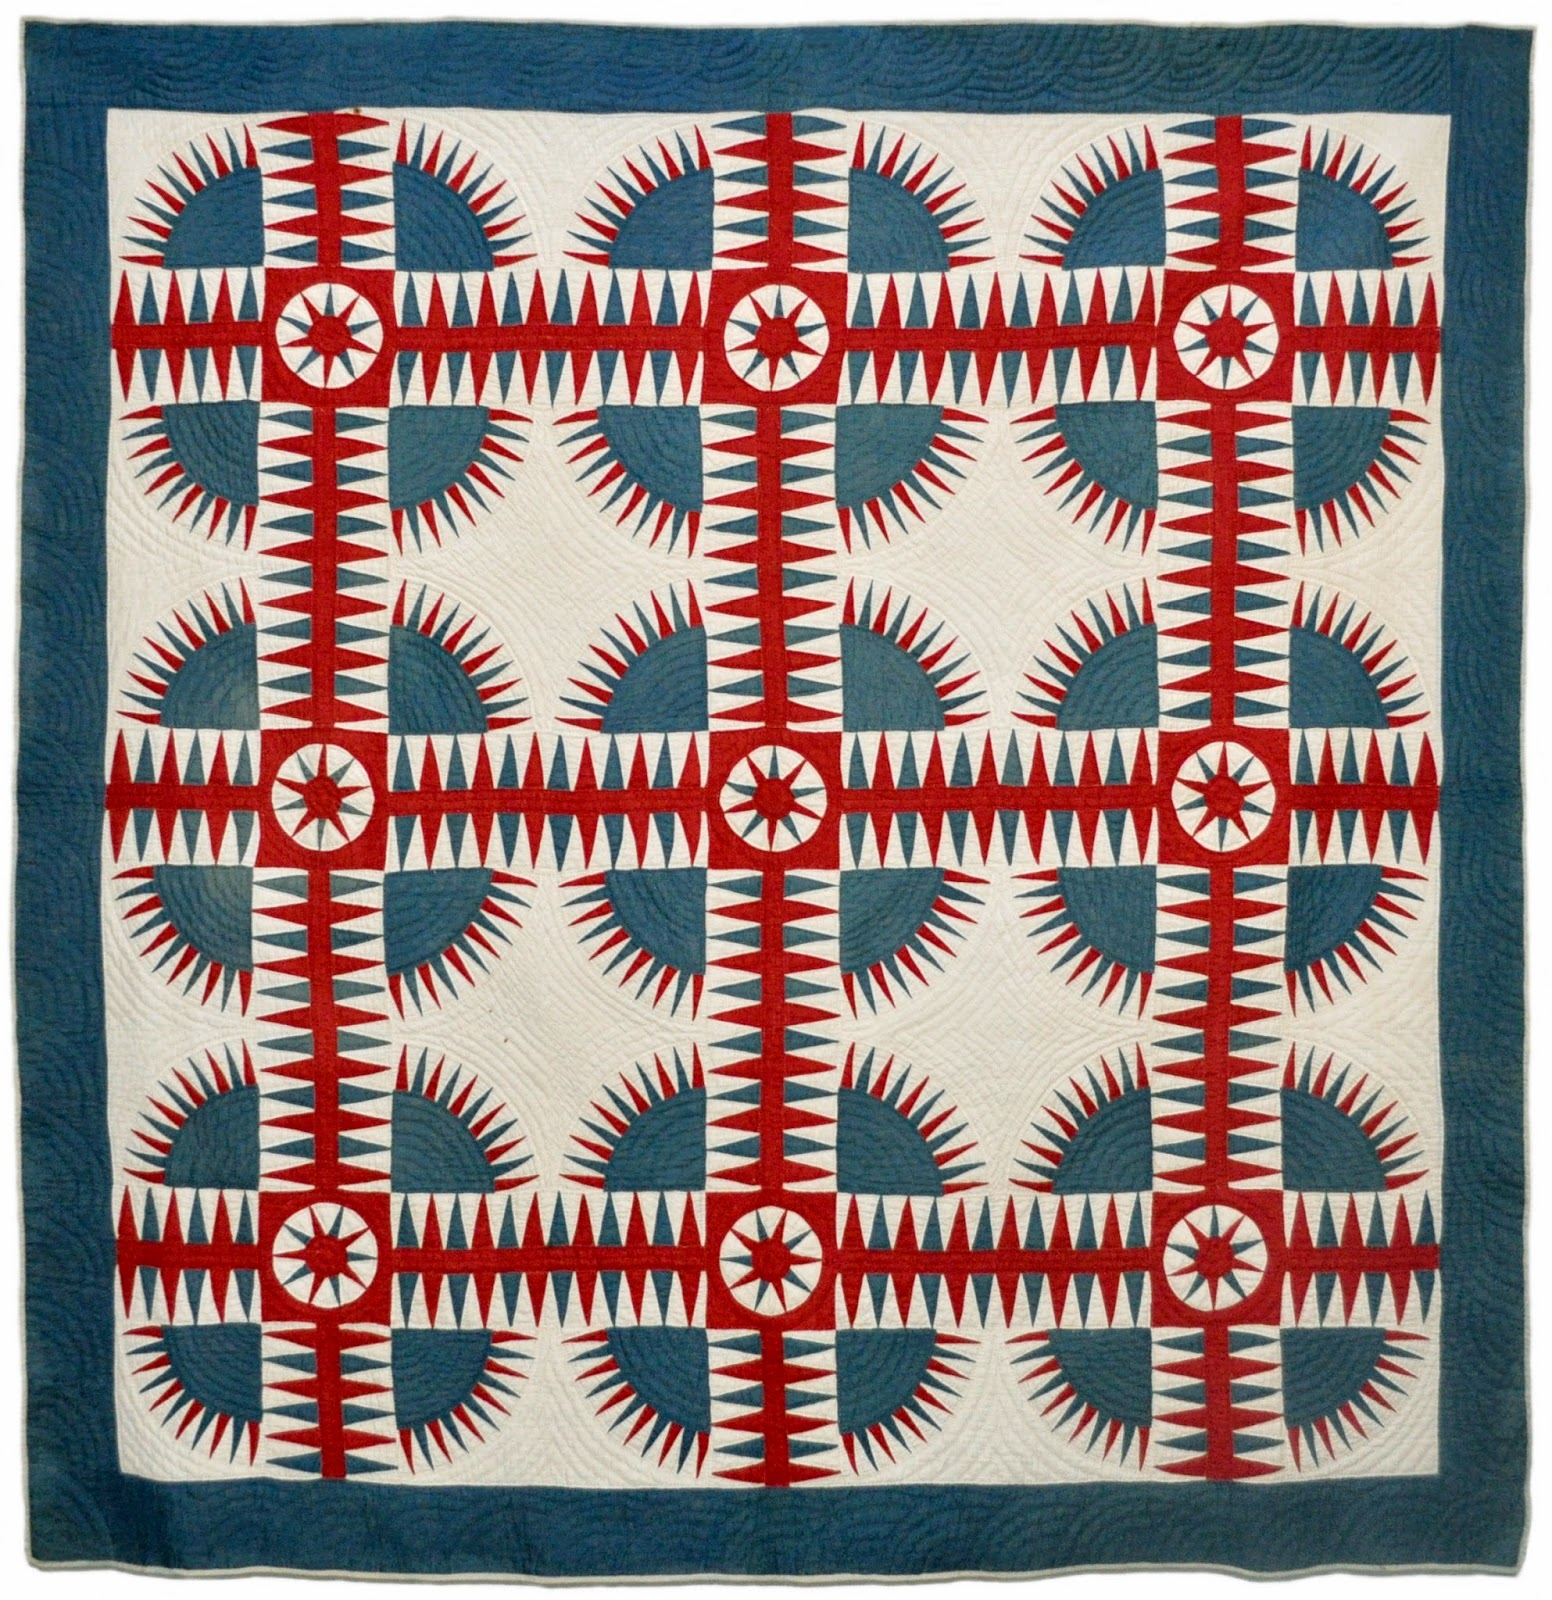 If You Love Antique Quilts...If You Need Quilt Ideas...